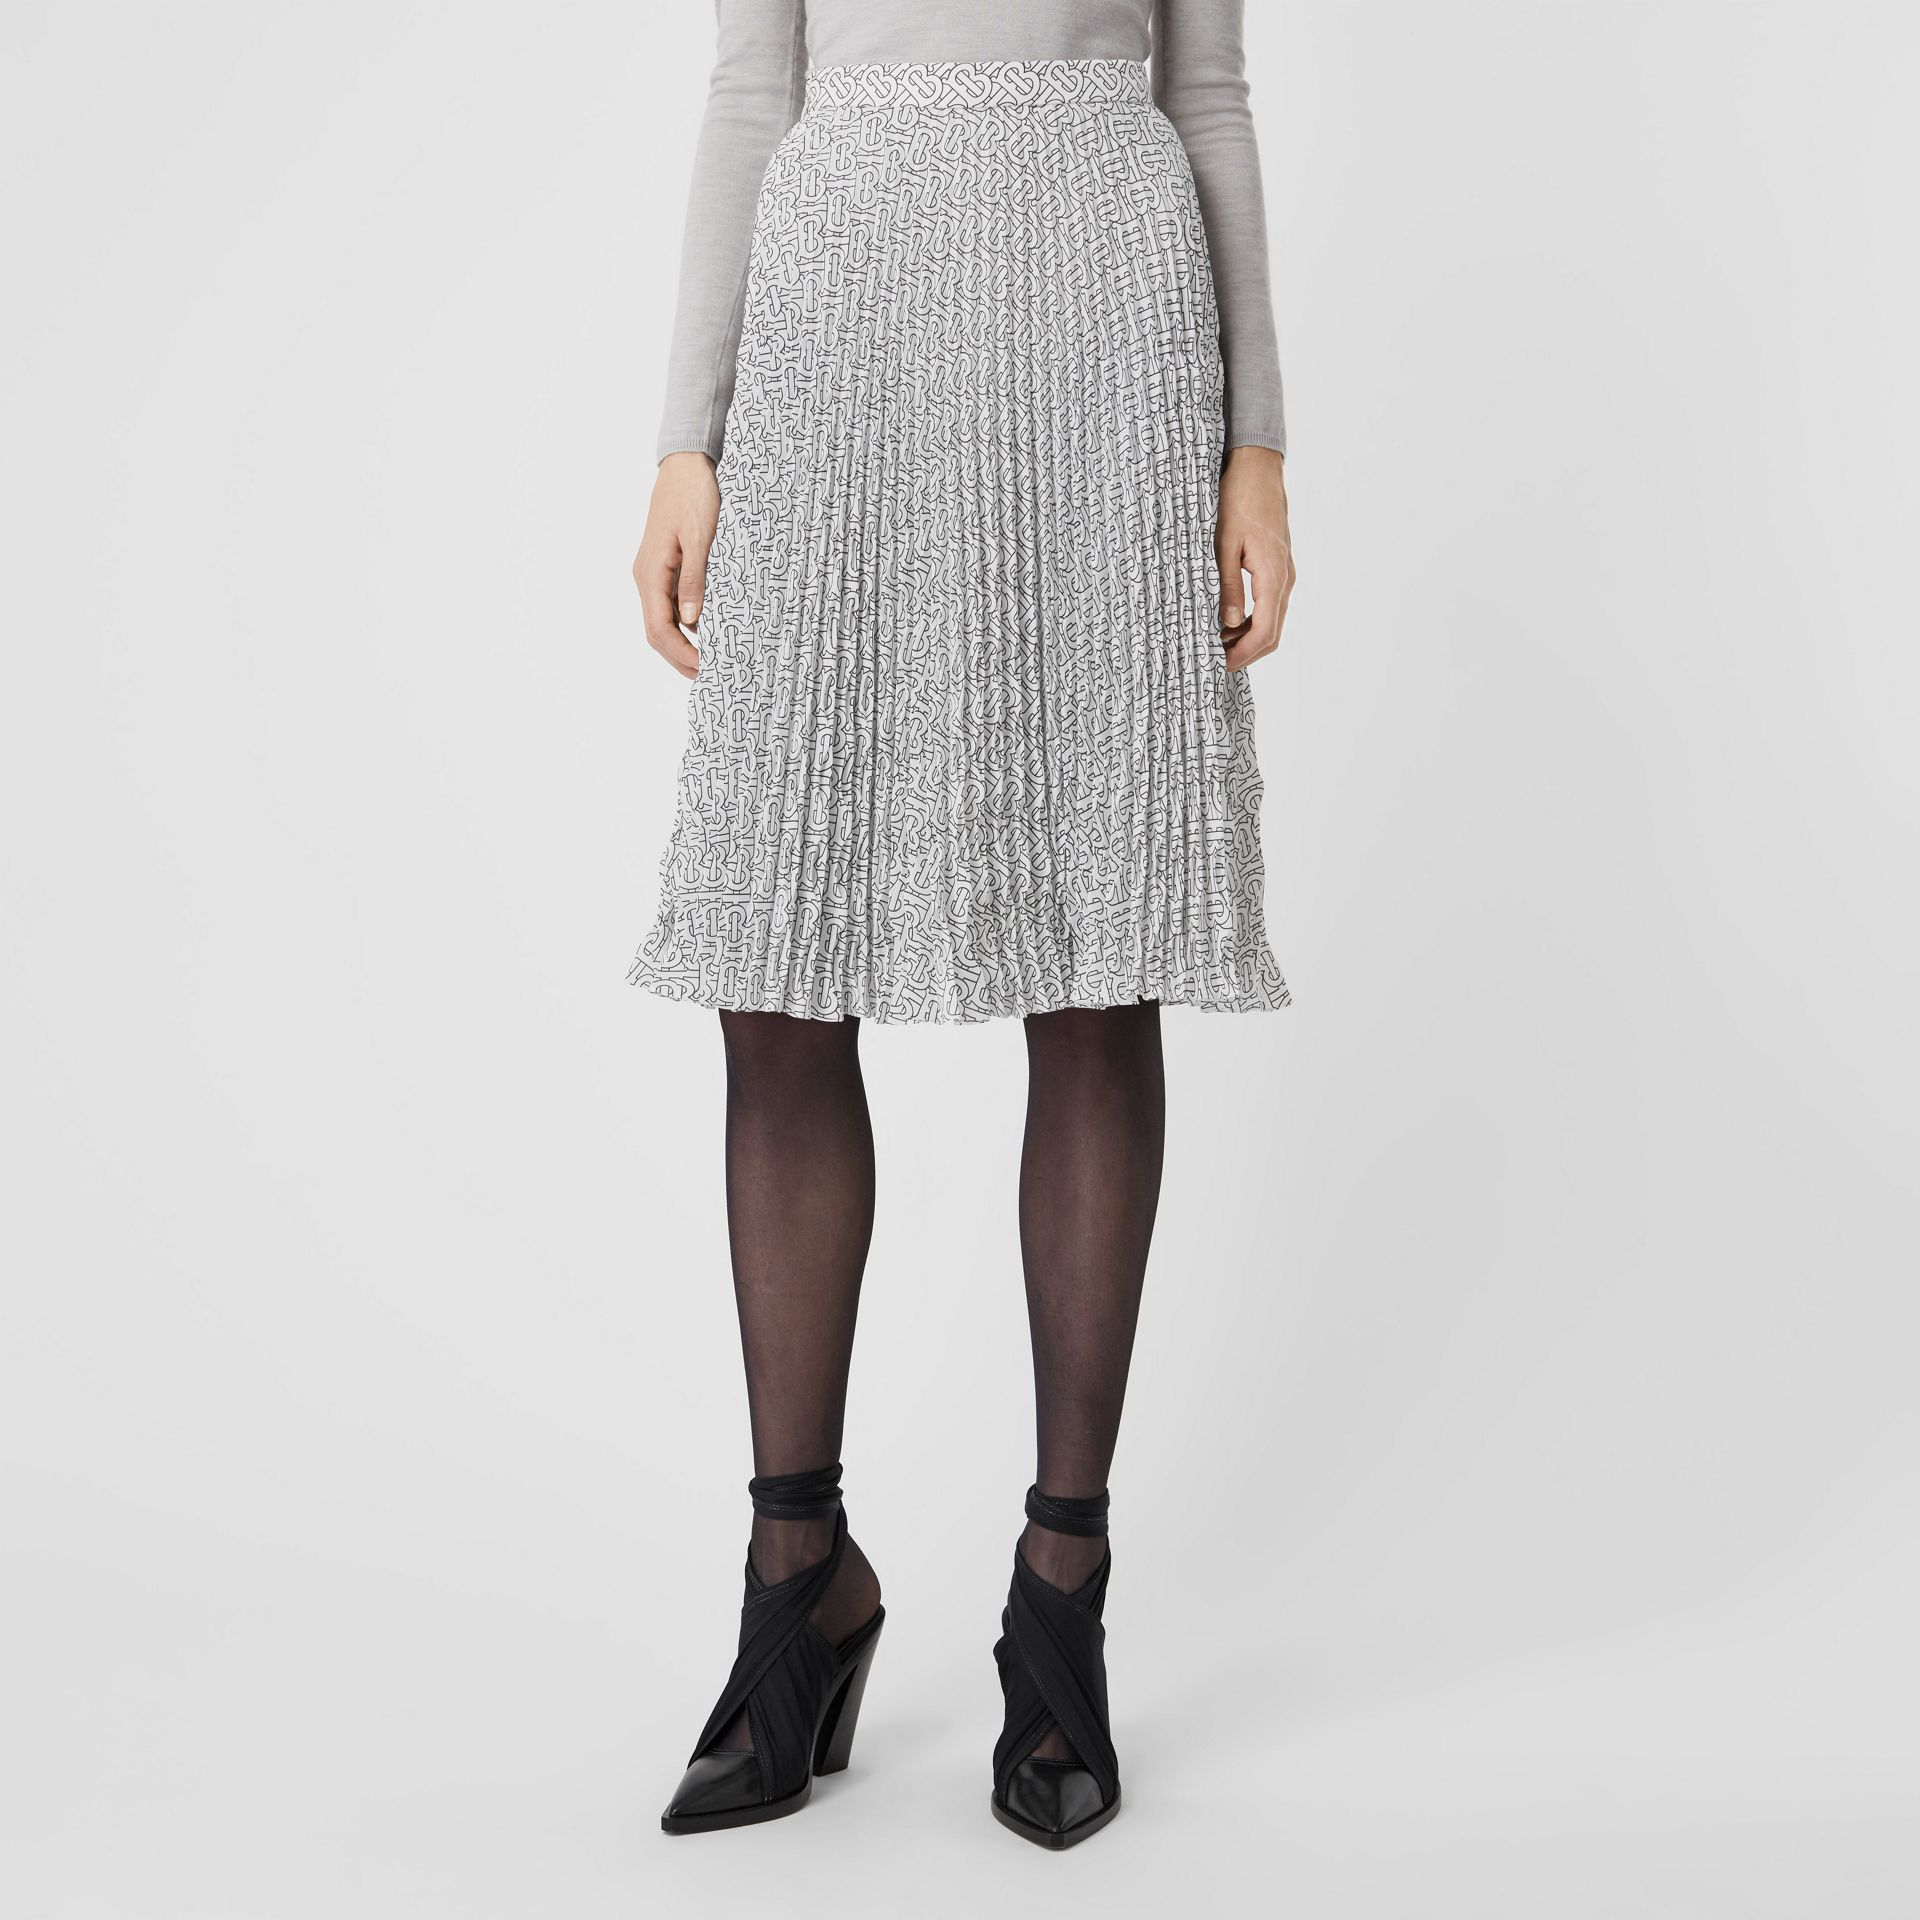 Monogram Print Crepe De Chine Pleated Skirt in White/black - Women | Burberry Australia - gallery image 4